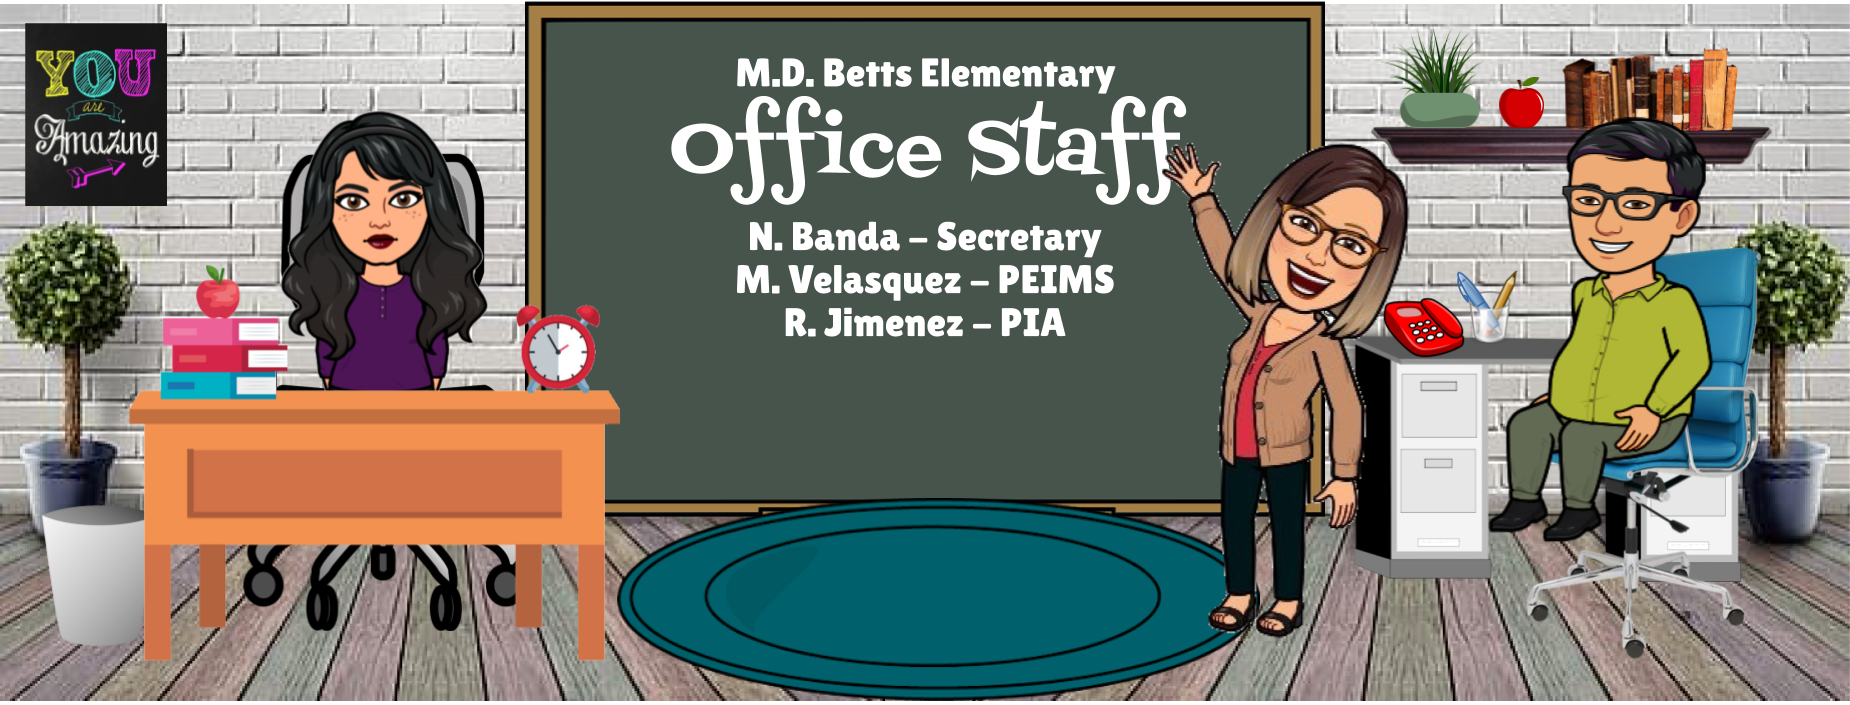 Image of Bitmoji Staff - Office Staff